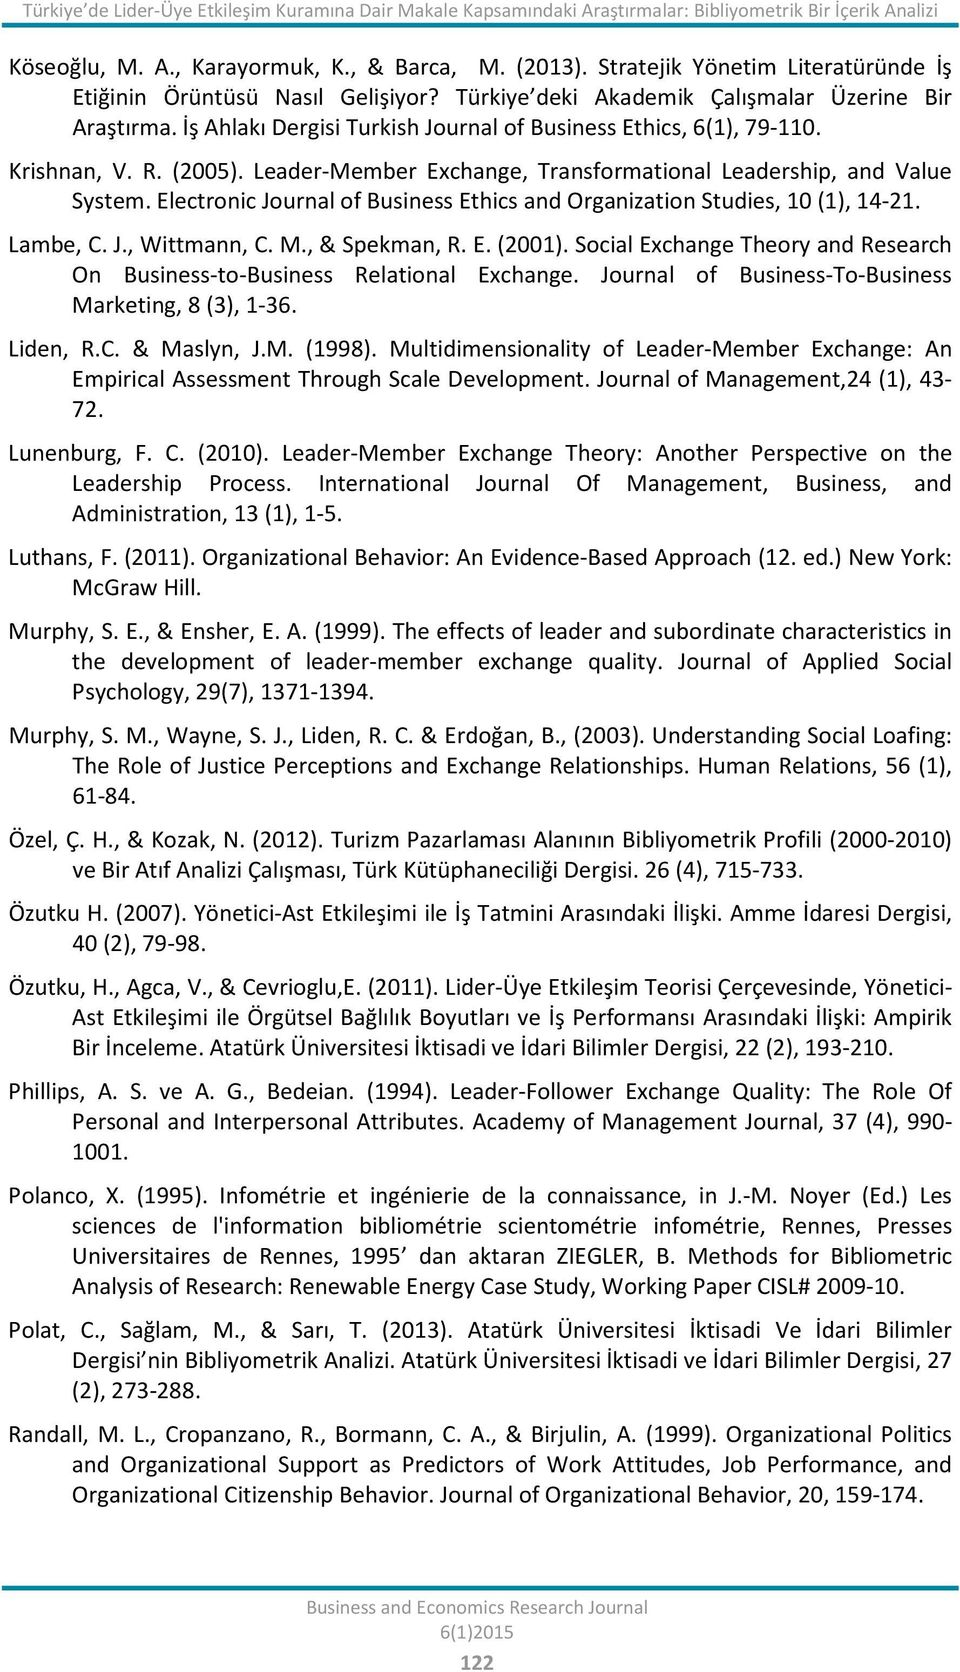 Krishnan, V. R. (2005). Leader-Member Exchange, Transformational Leadership, and Value System. Electronic Journal of Business Ethics and Organization Studies, 10 (1), 14-21. Lambe, C. J., Wittmann, C.